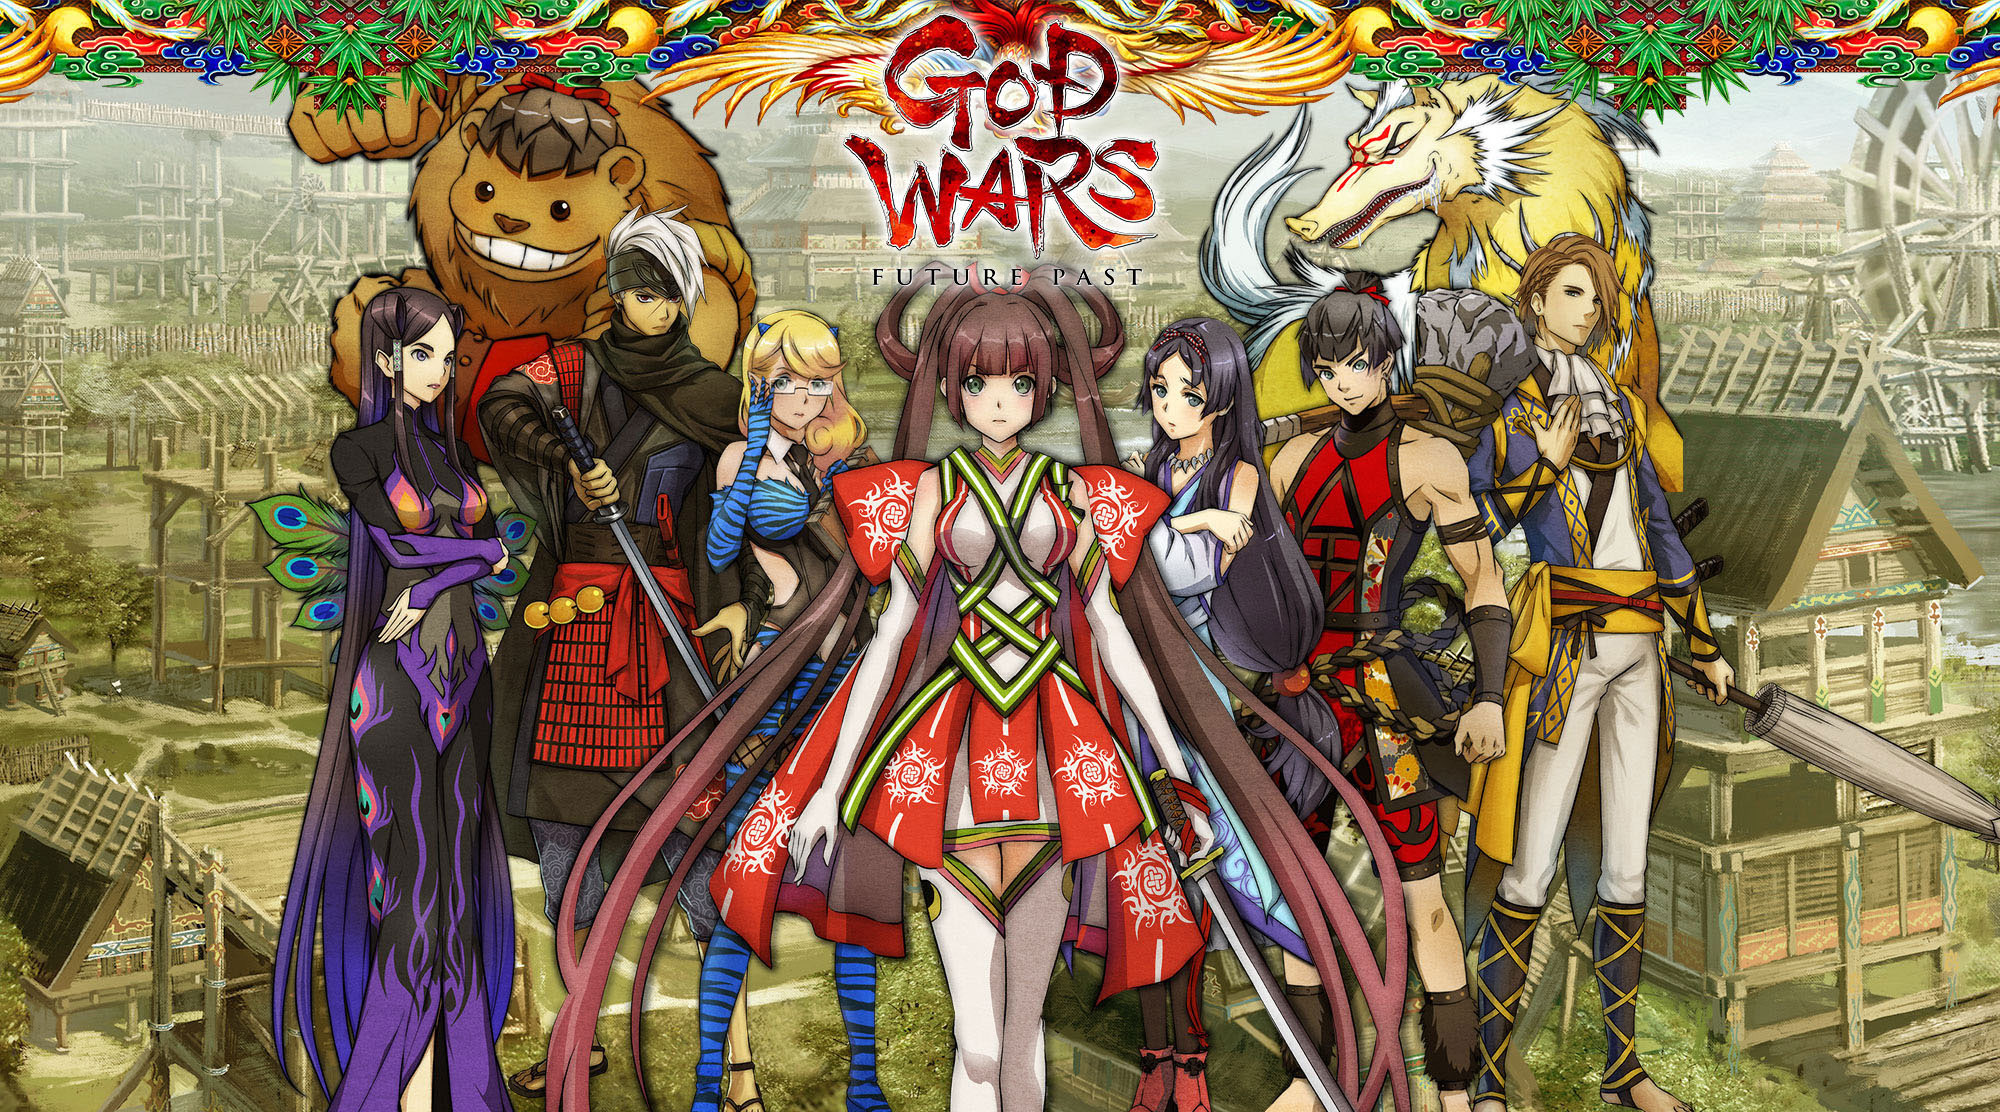 God Wars Future Past Debut Trailer RPG Site